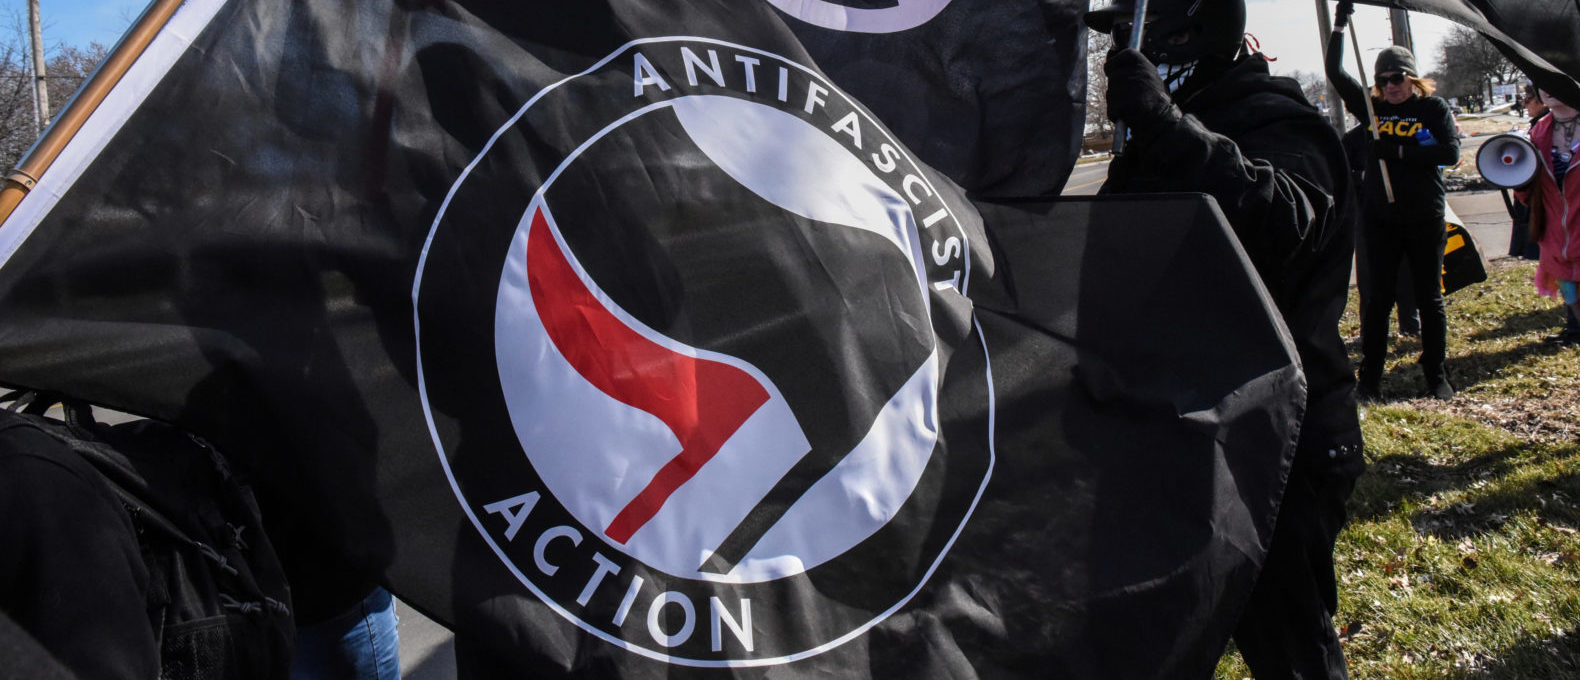 Members of the Great Lakes anti-fascist organization (Antifa) fly flags during a protest against the Alt-right outside a hotel in Warren, Michigan, U.S., March 4, 2018. REUTERS/Stephanie Keith